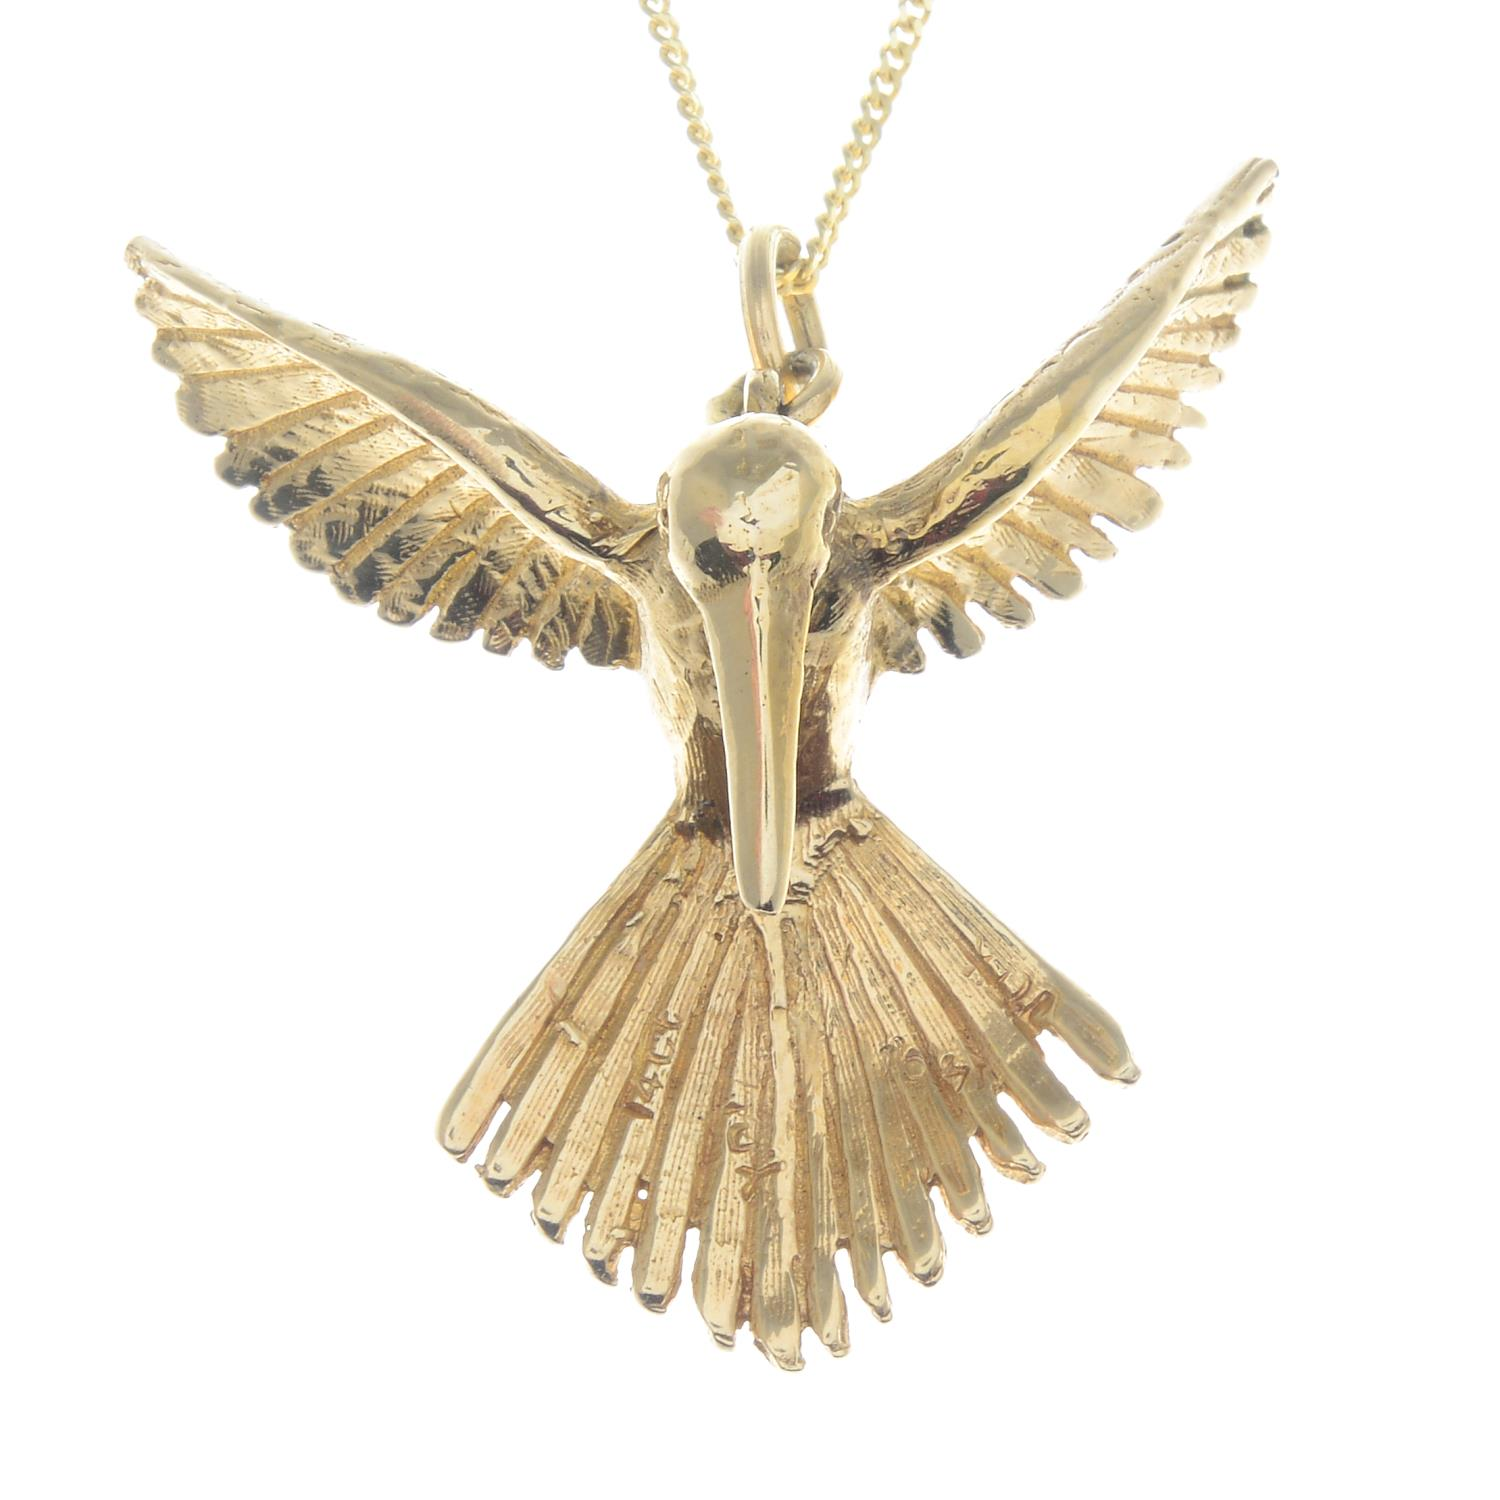 A pendant, depicting a textured hummingbird in flight, with 9ct gold chain.